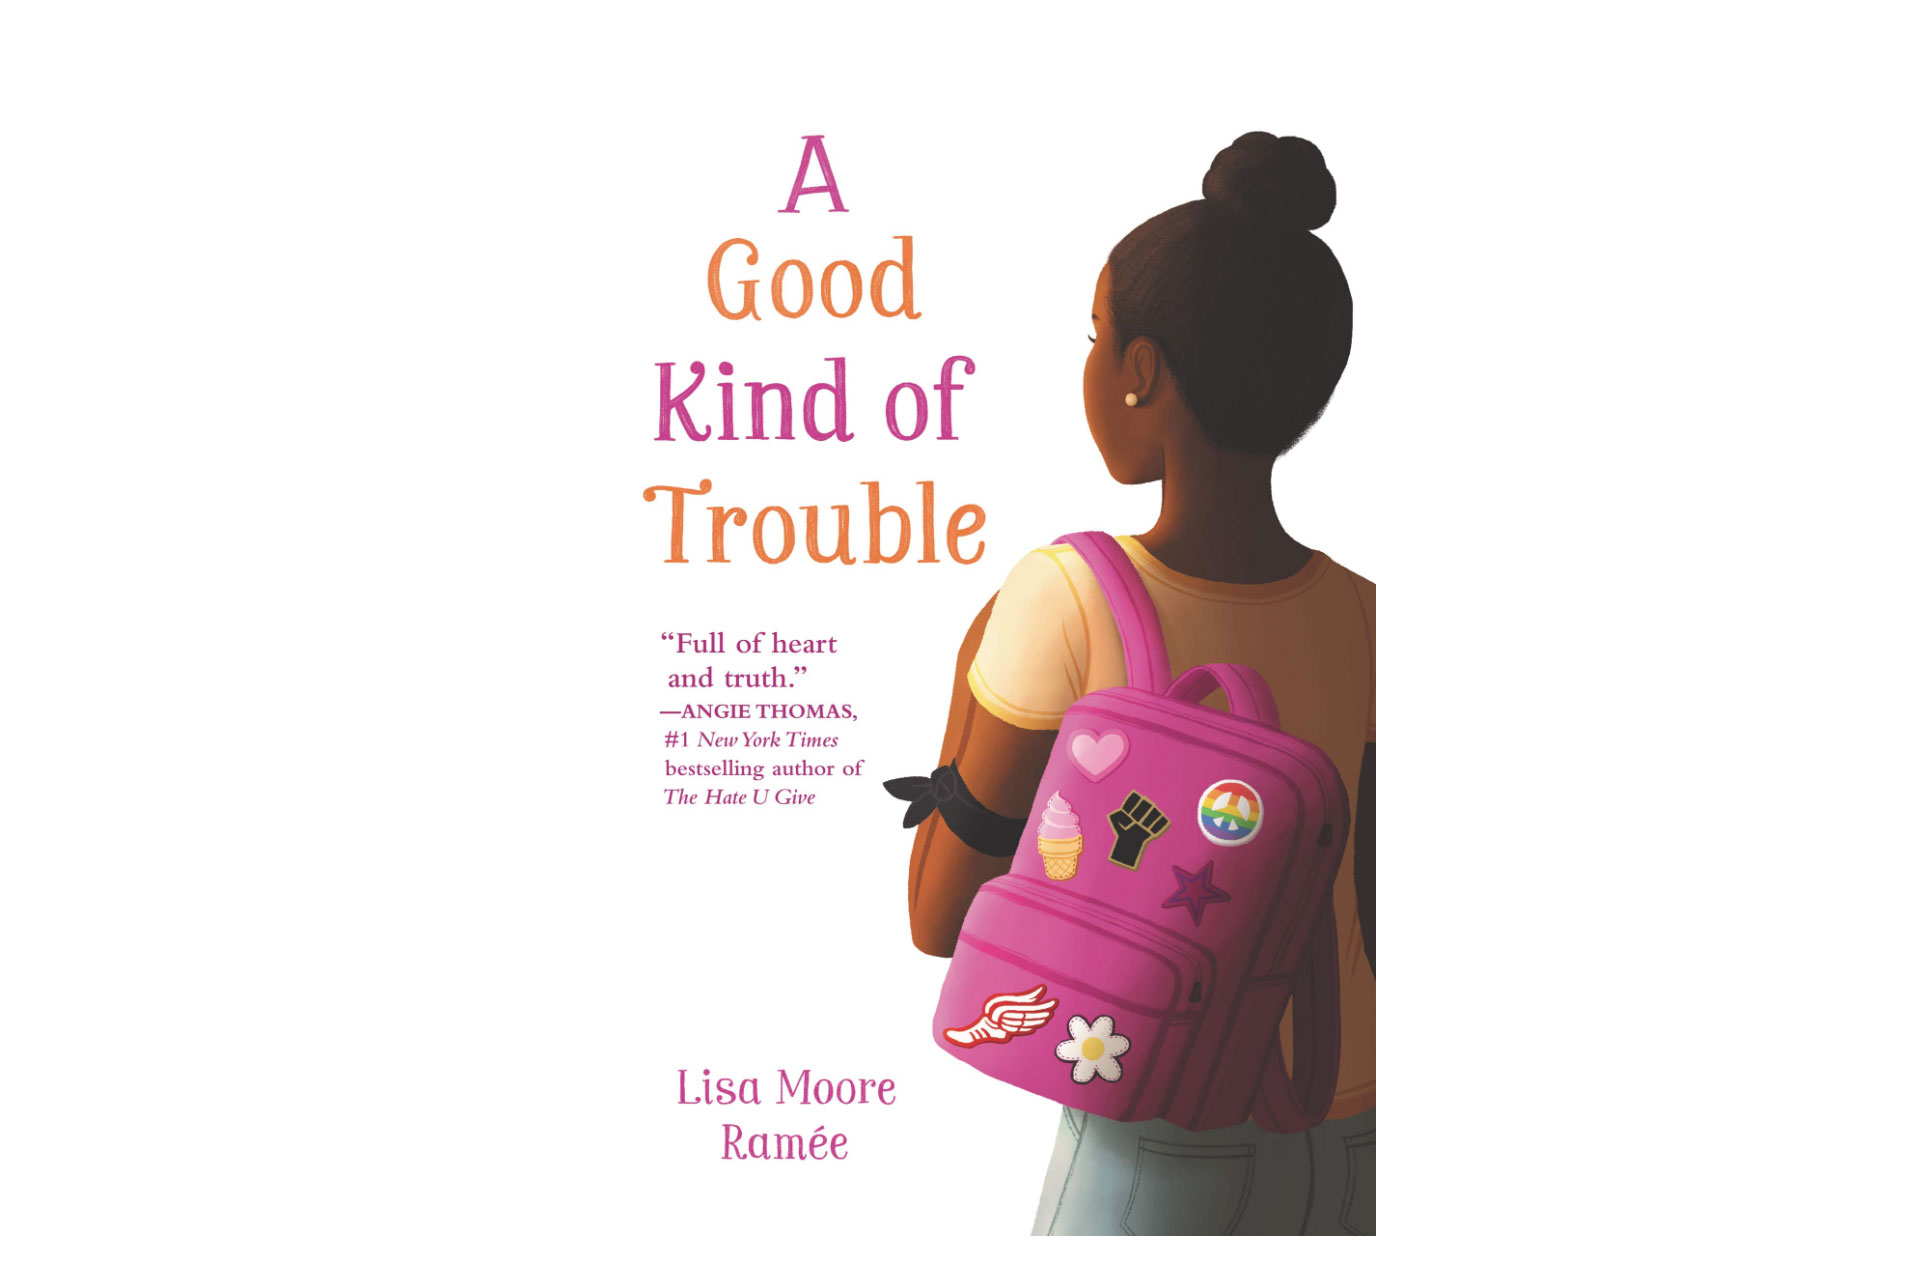 A Good Kind of Trouble Book; Courtesy of Amazon